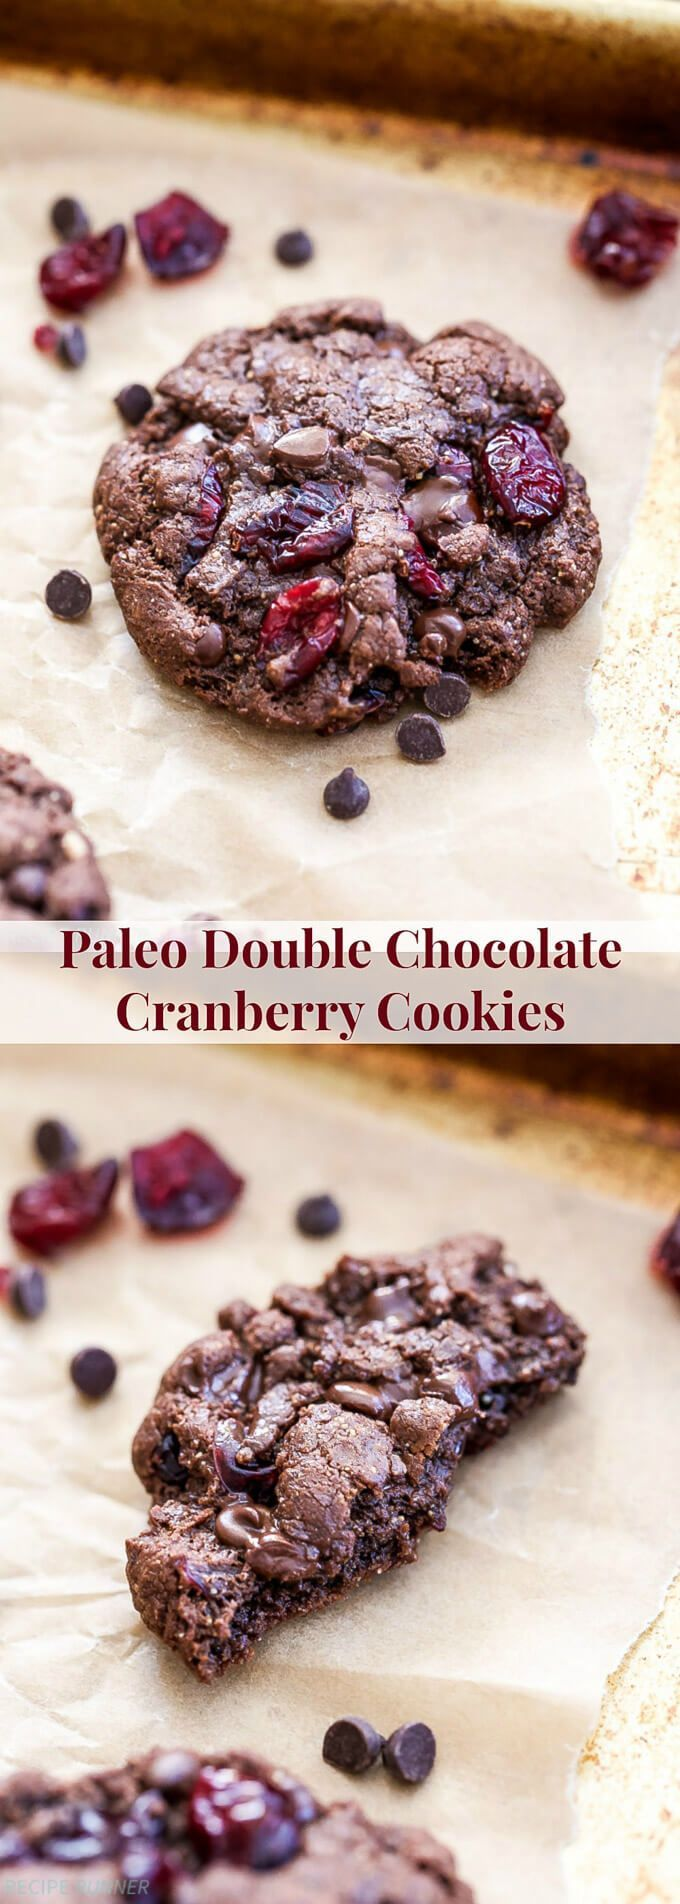 Chewy on the outside with a soft brownie-like interior. These Paleo Double Chocolate Cranberry Cookies are perfect for the holiday season or anytime you get that chocolate cookie craving!: